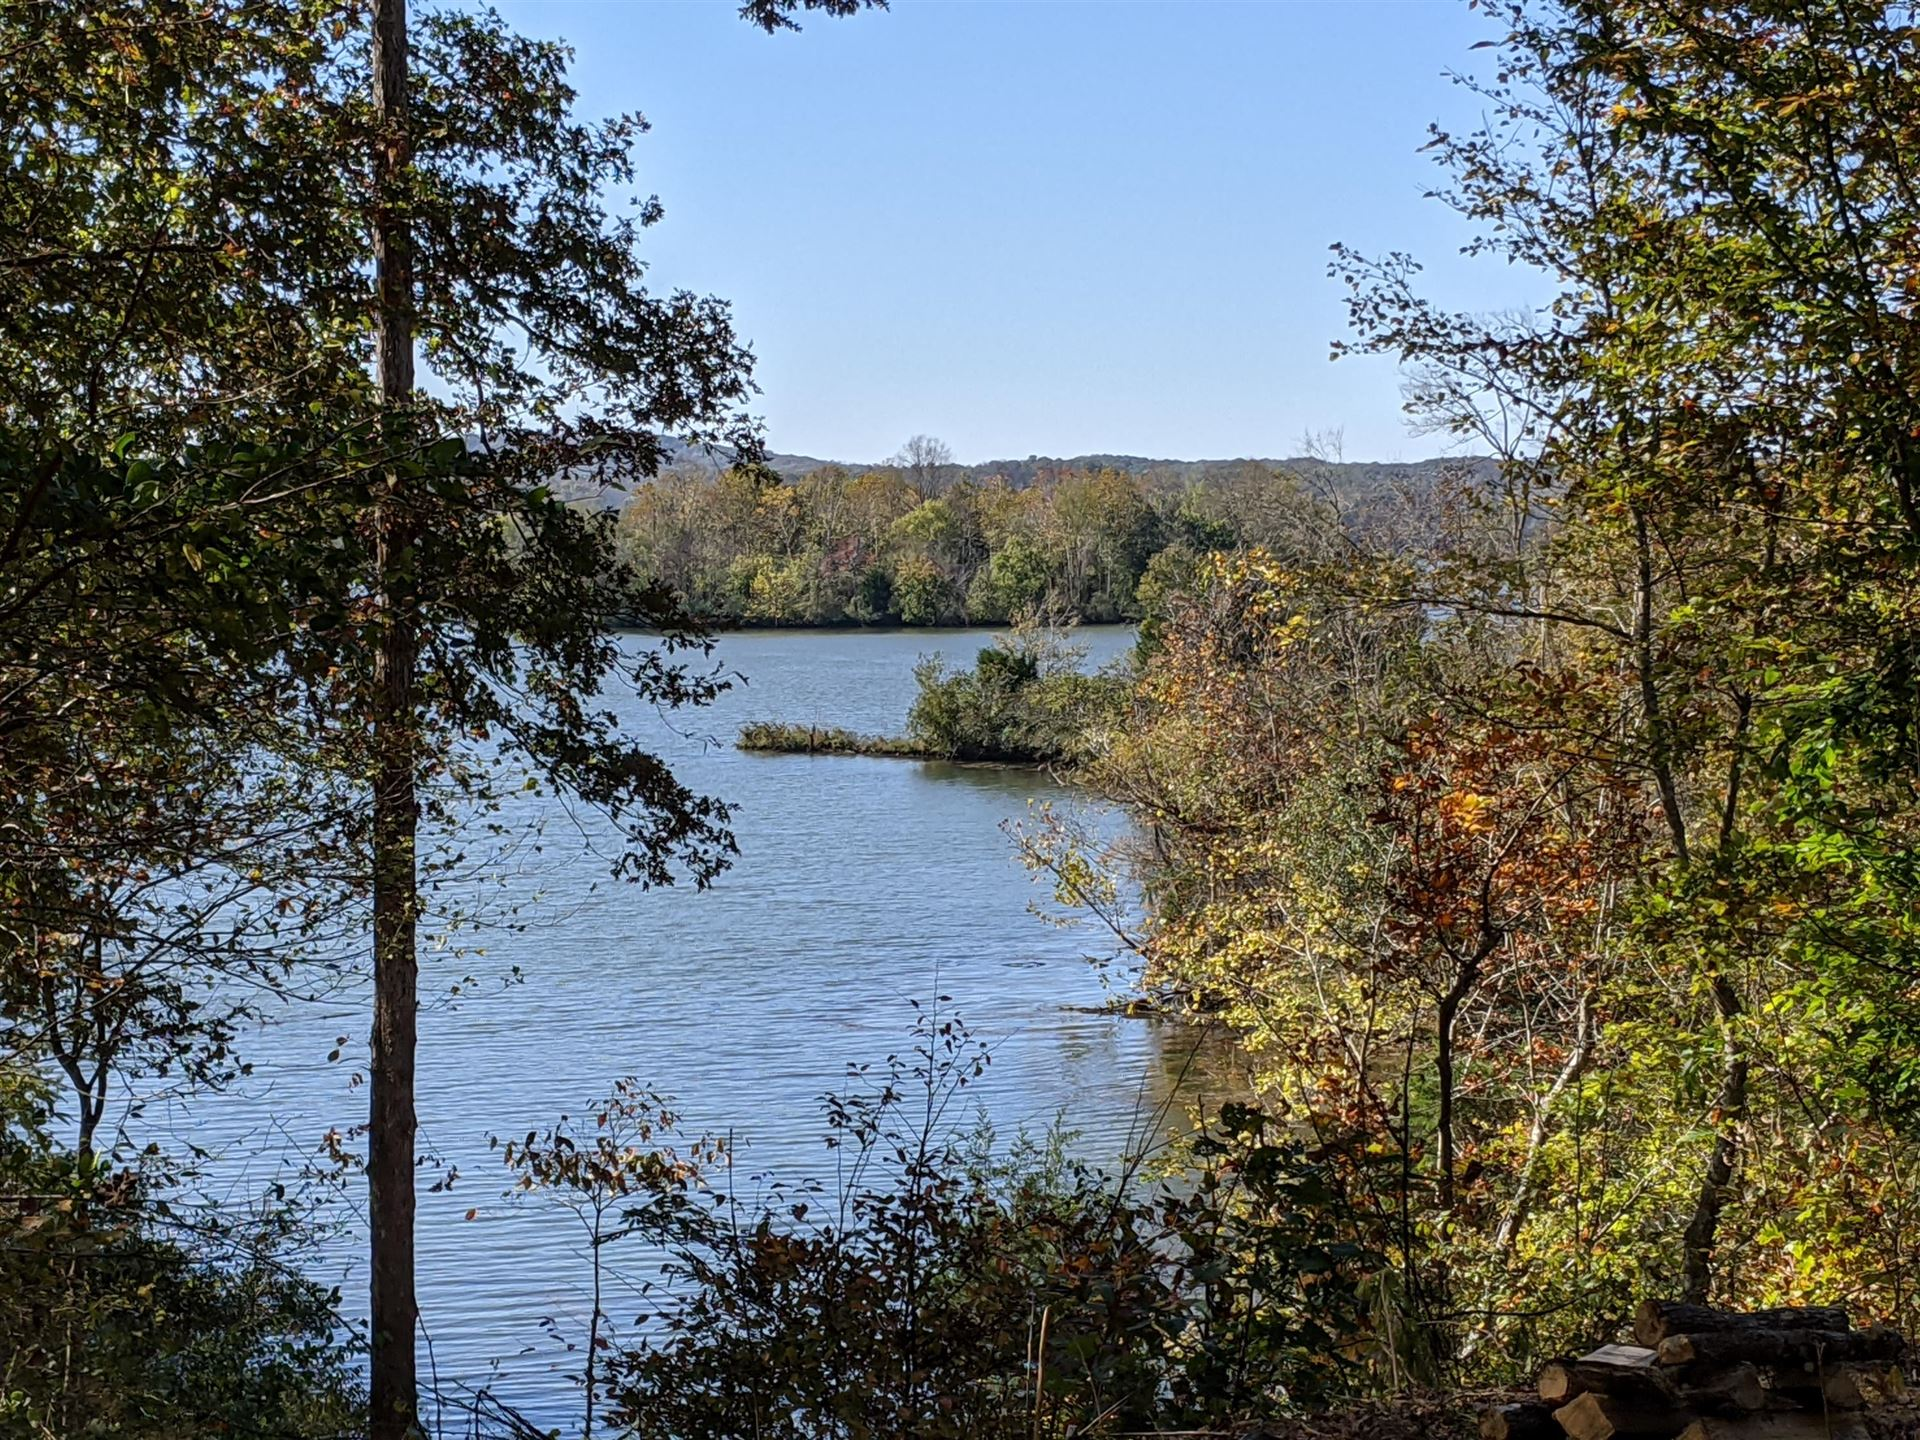 Photo for 1286 New Midway Rd, Kingston, TN 37763 (MLS # 1133646)